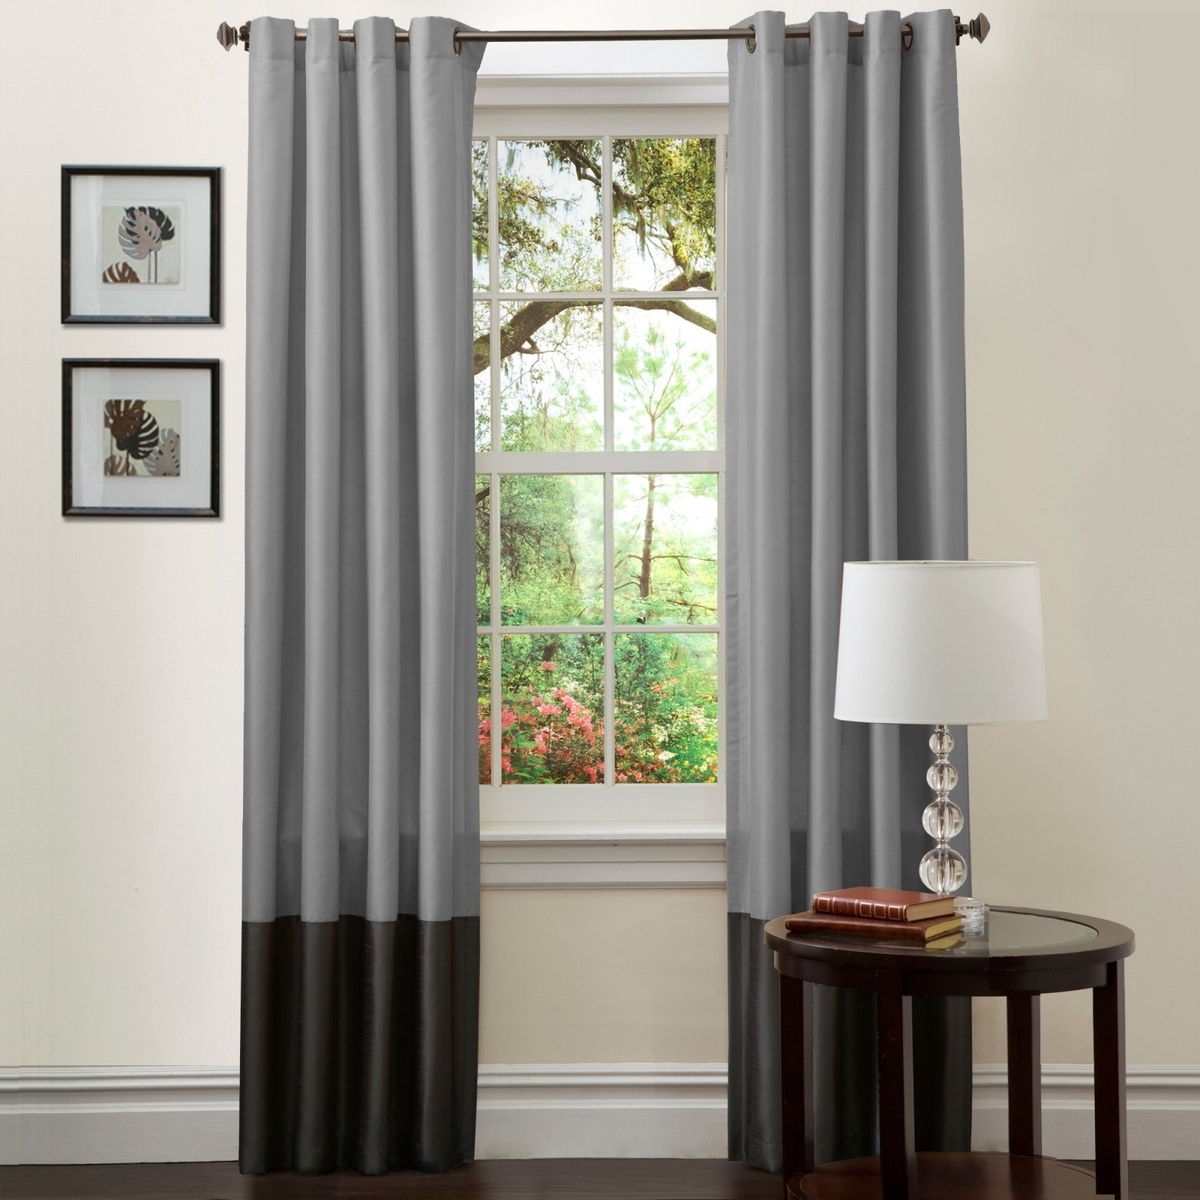 Best 4 Tips to Decorate Attractive Window Curtains Interior Design - Home Improvement Tips